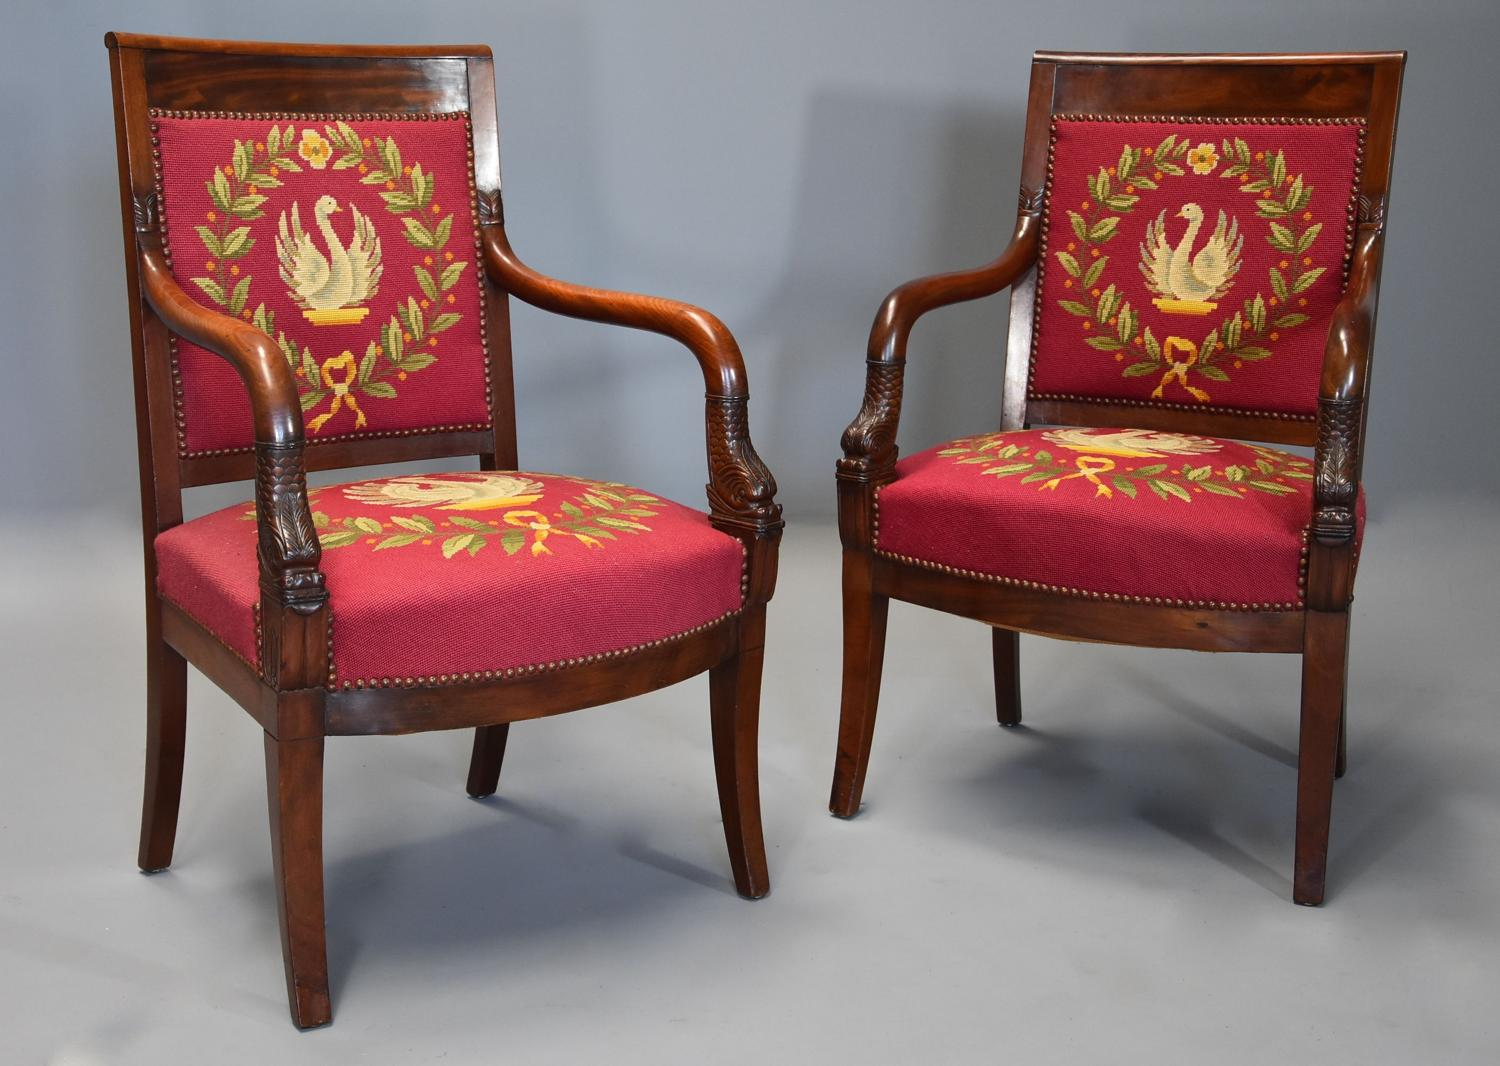 Pair of 19thc French Empire mahogany fauteuils or open armchairs